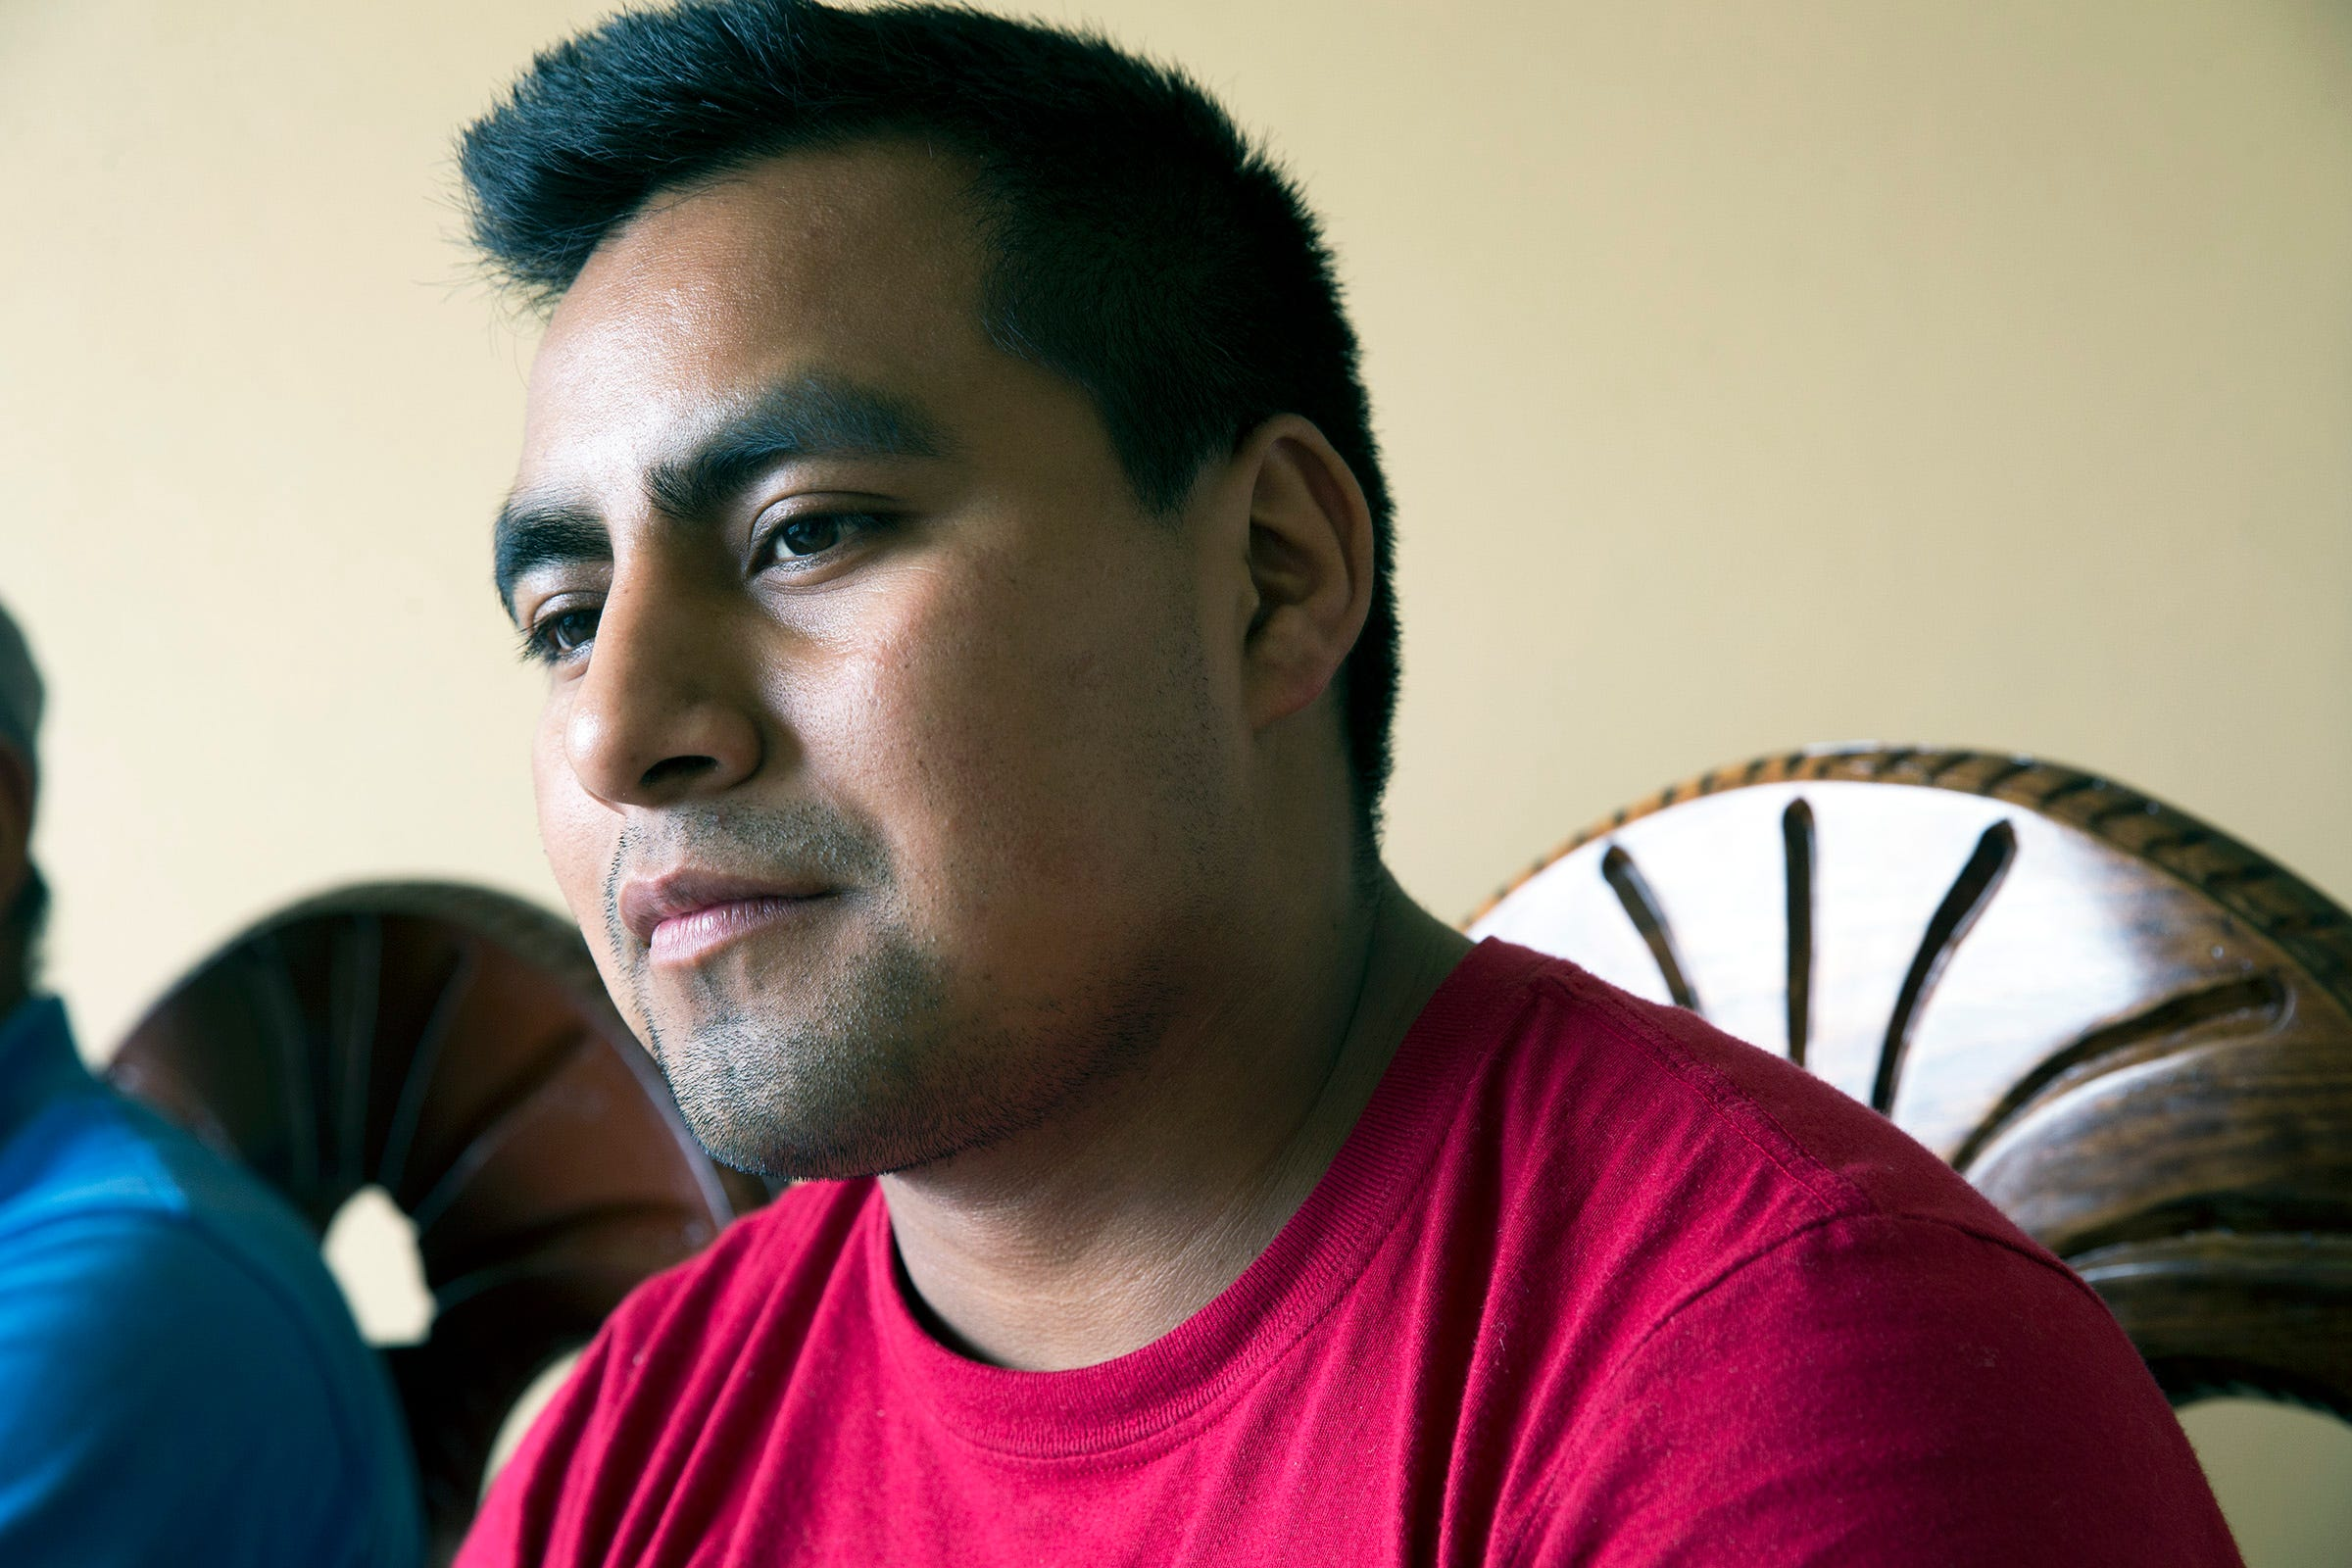 Salvador Salas spent more than six years working at dairy farms in Wisconsin and Minnesota. He returned to Astacinga, Mexico, in 2019.